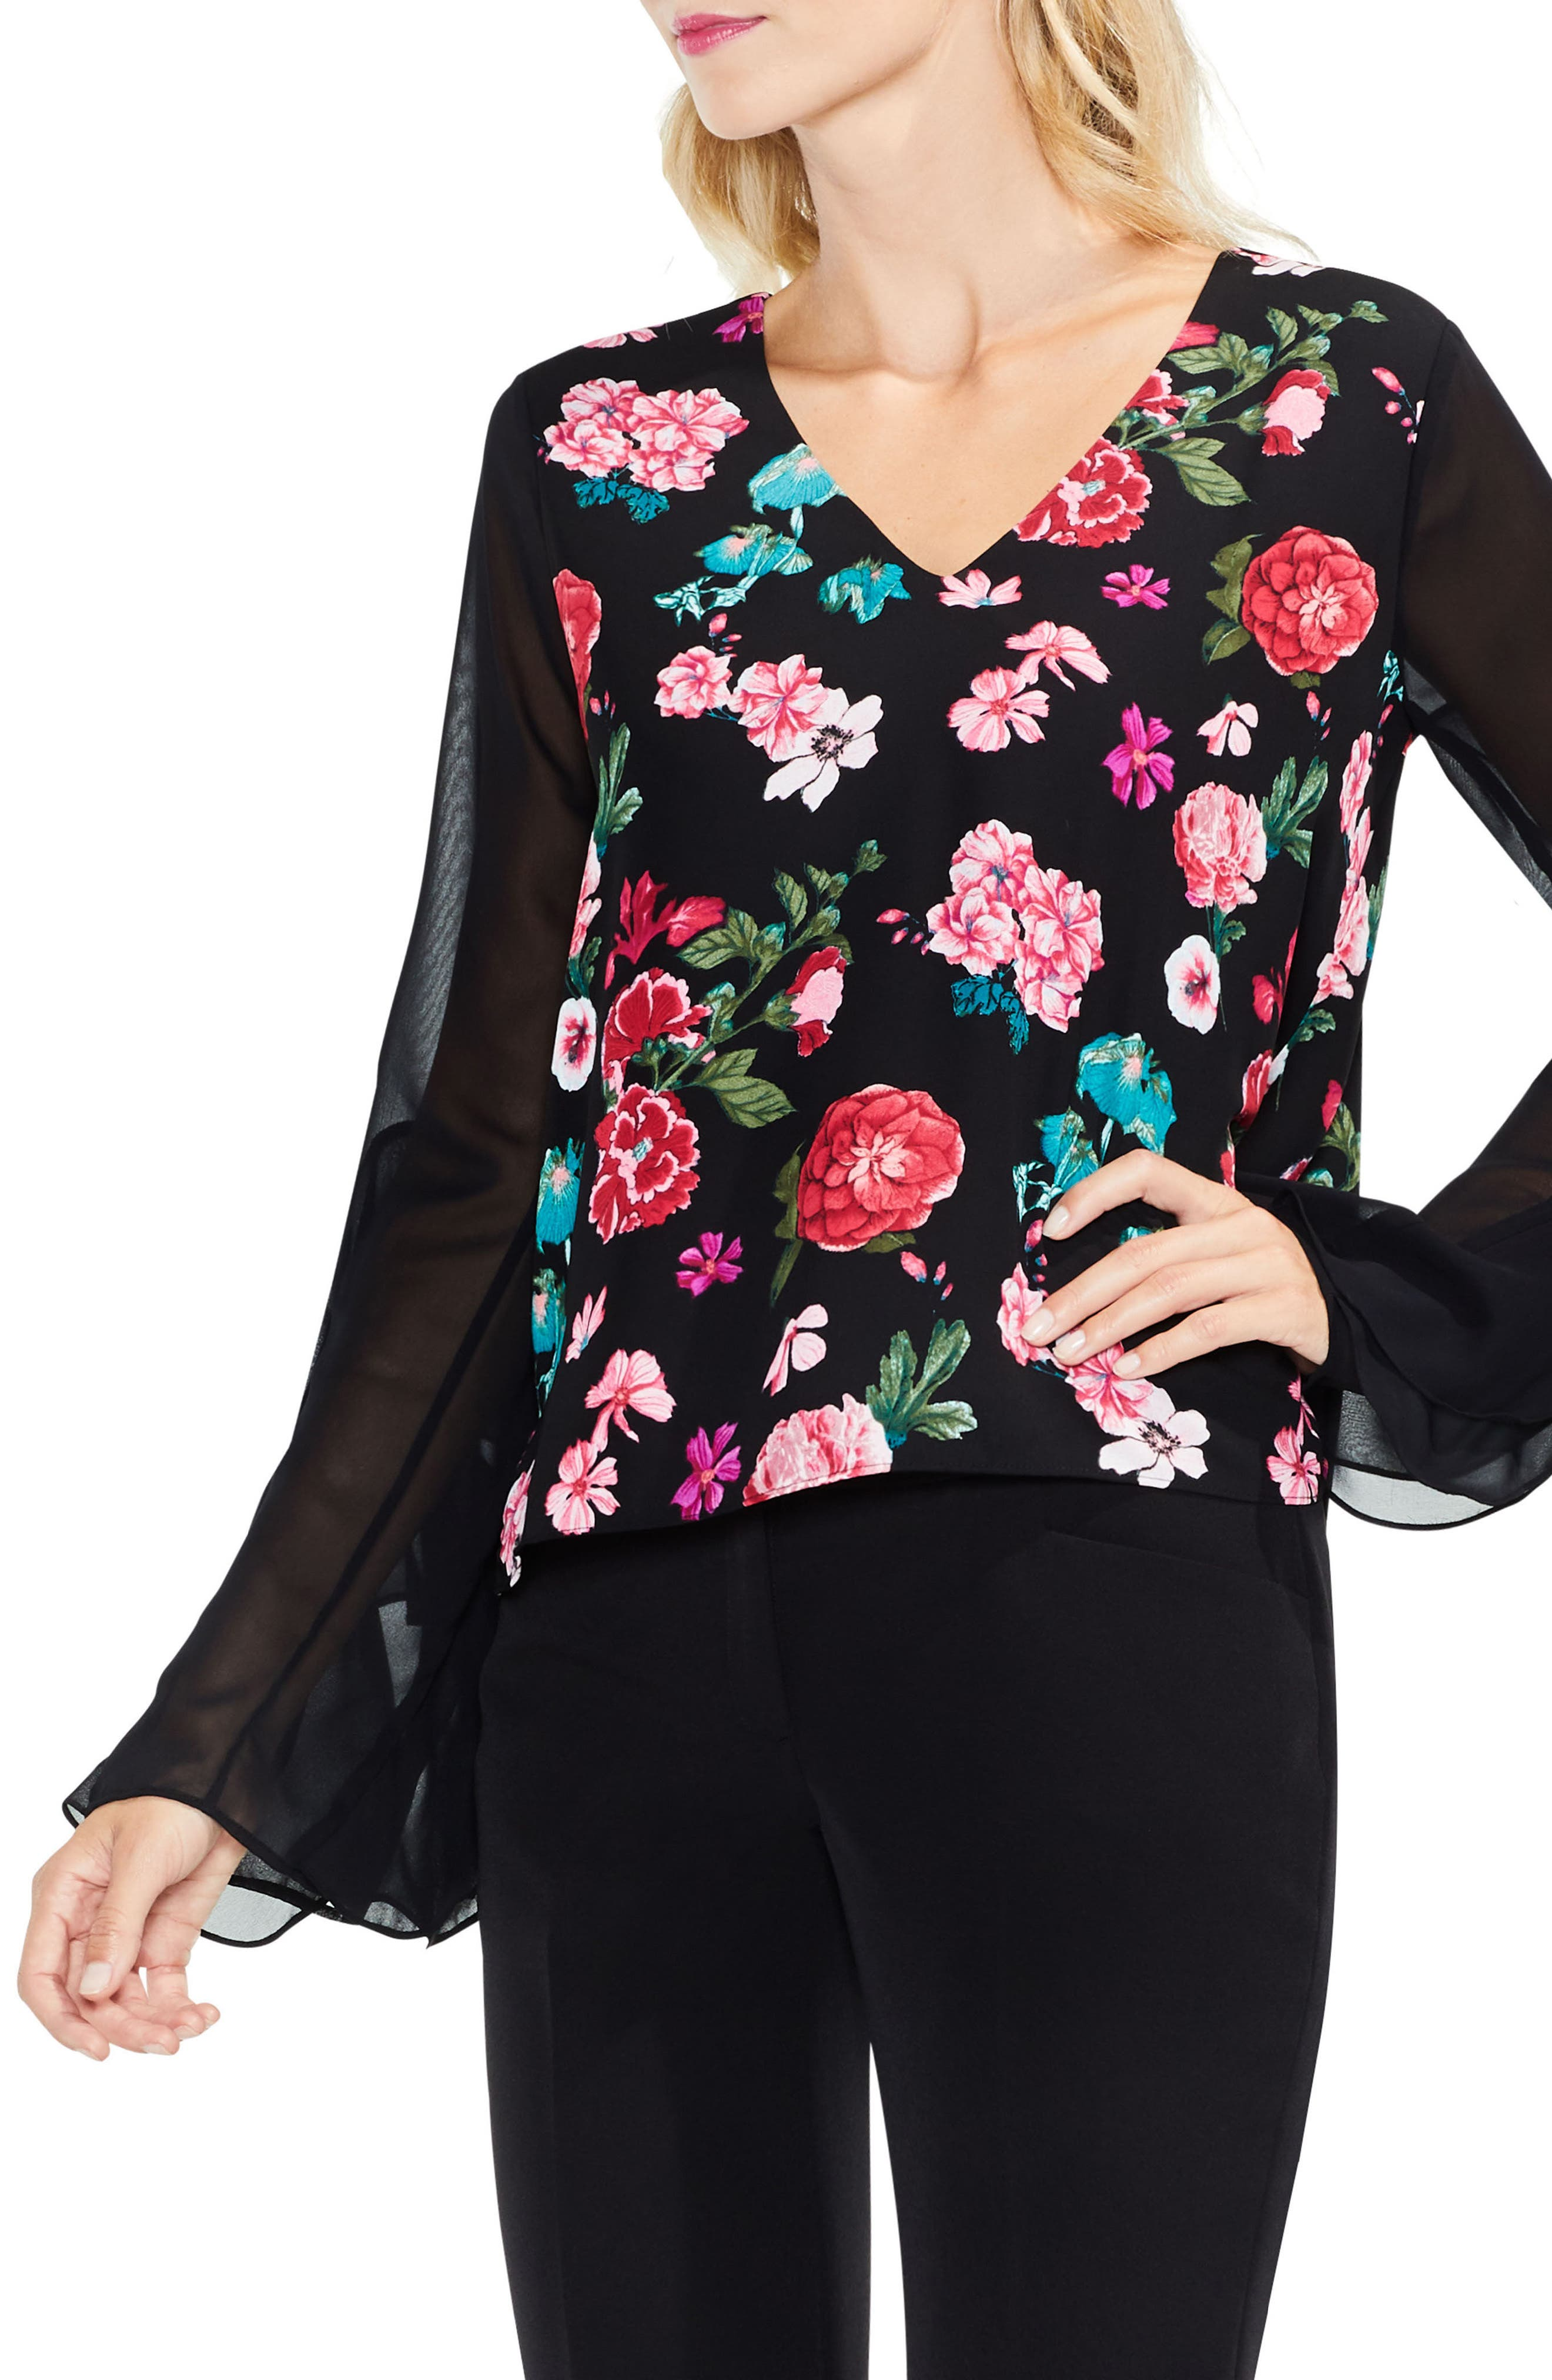 Floral Heirloom Ruffle Sleeve Top,                             Main thumbnail 1, color,                             006